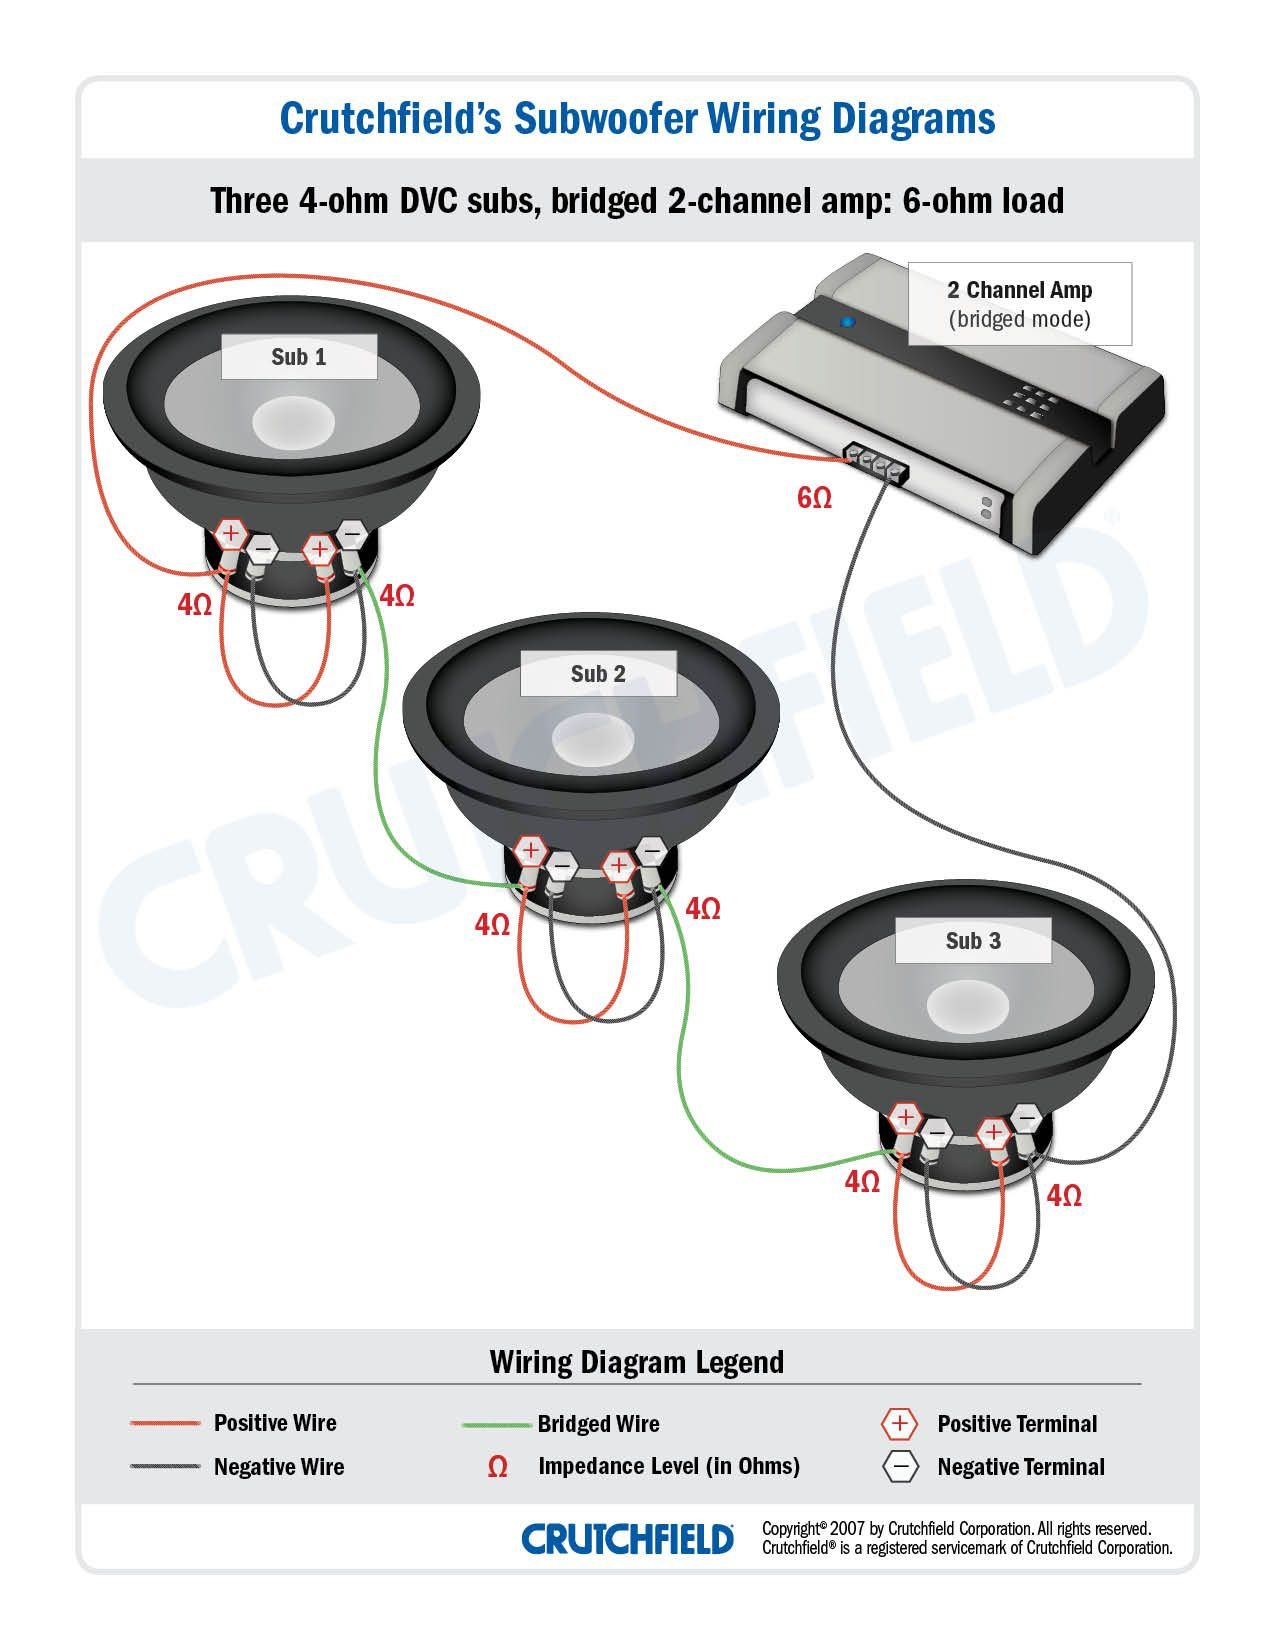 7a8a8865410c95e8f51e7b09390b7c36 top 10 subwoofer wiring diagram free download 3 dvc 4 ohm 2 ch top rockford fosgate crossover wiring diagram at soozxer.org